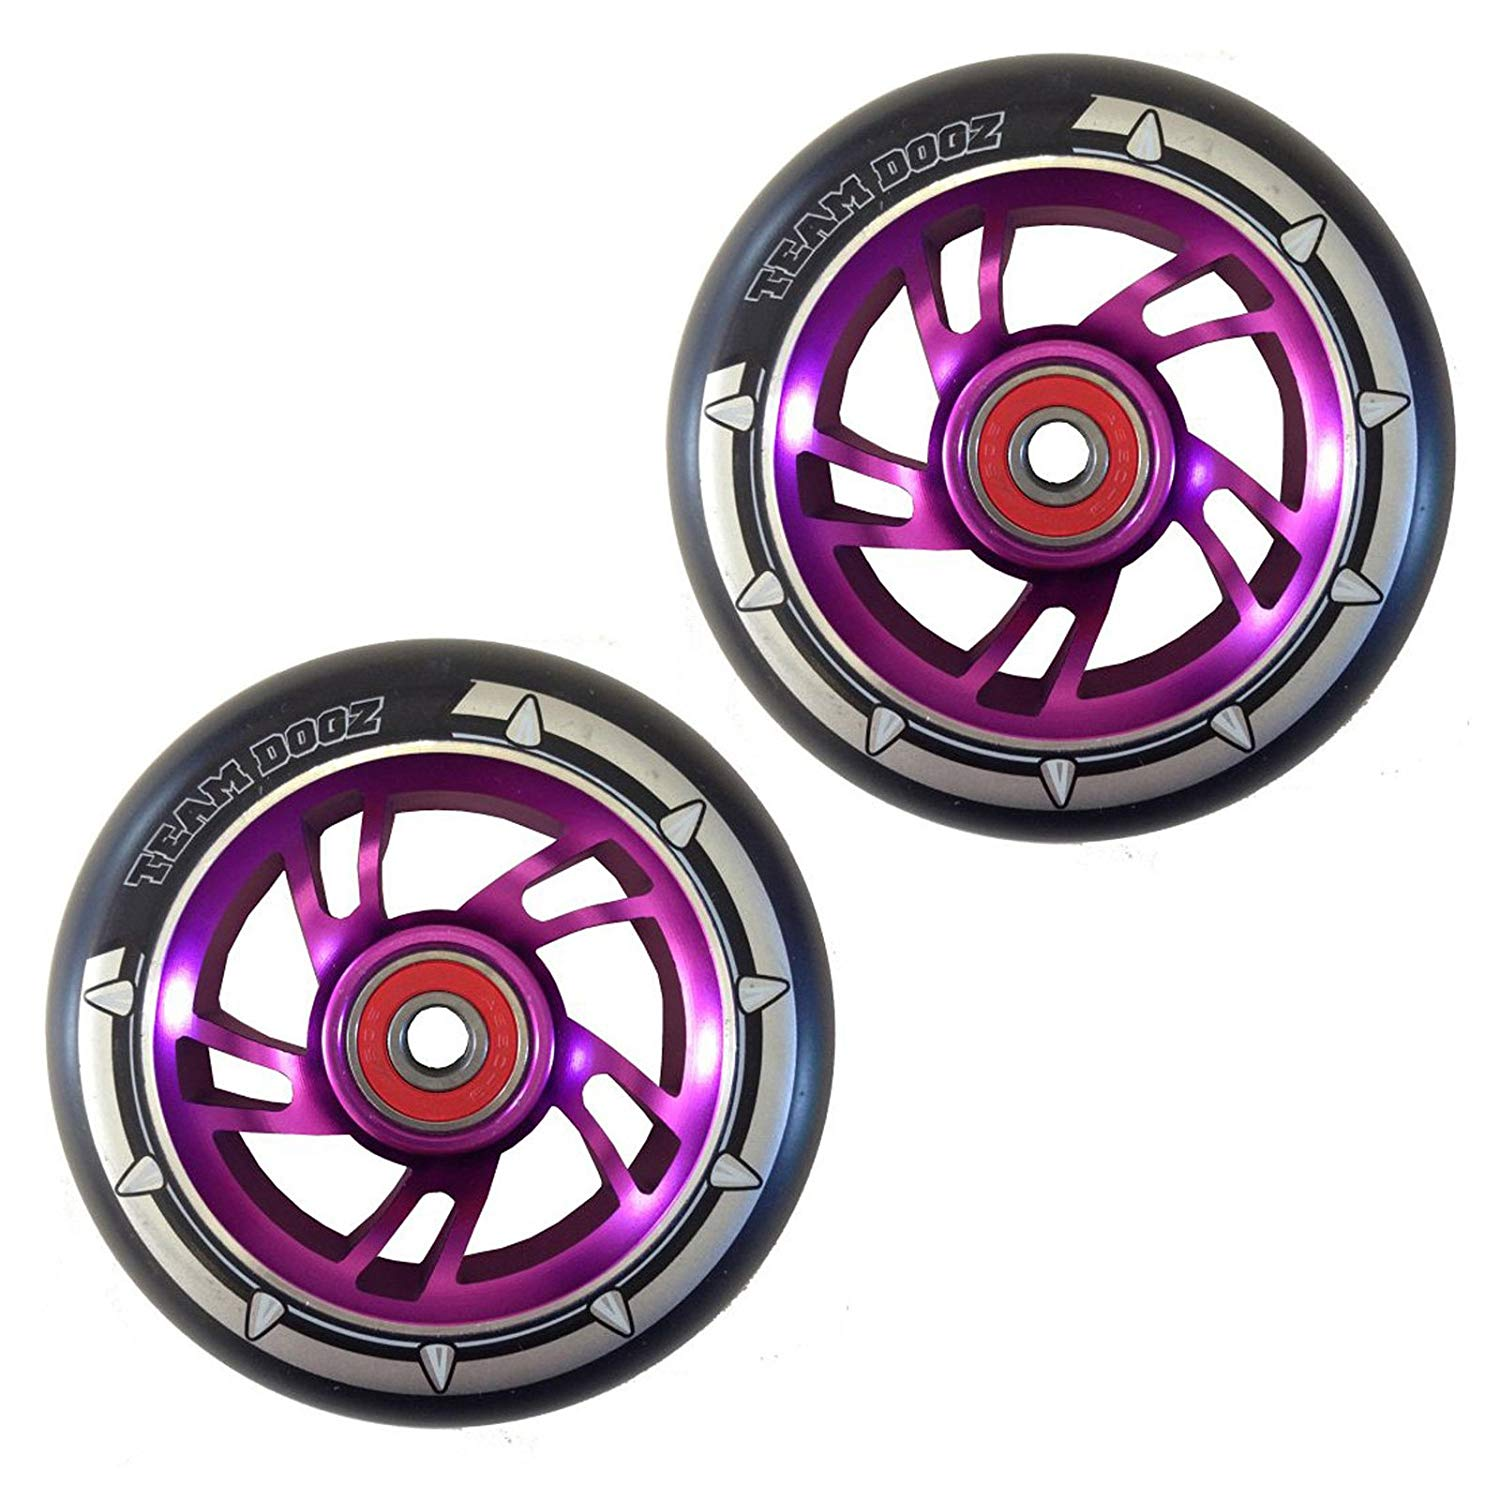 Team Dogz 100mm Swirl Scooter Wheels - Purple Cores Black Tyres (Pair)